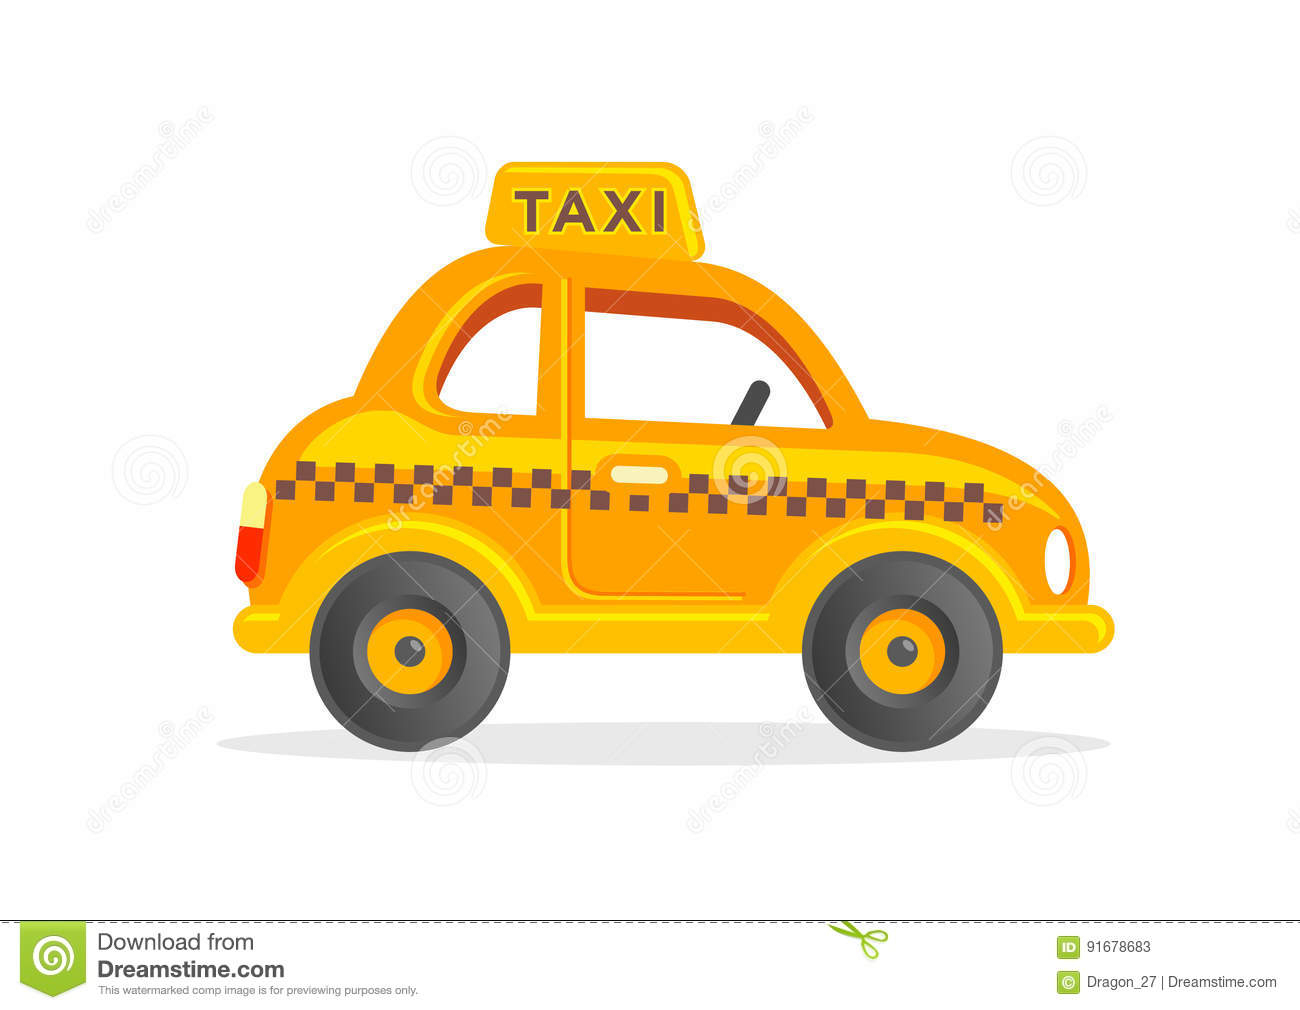 Taxi Cab Clipart to free.